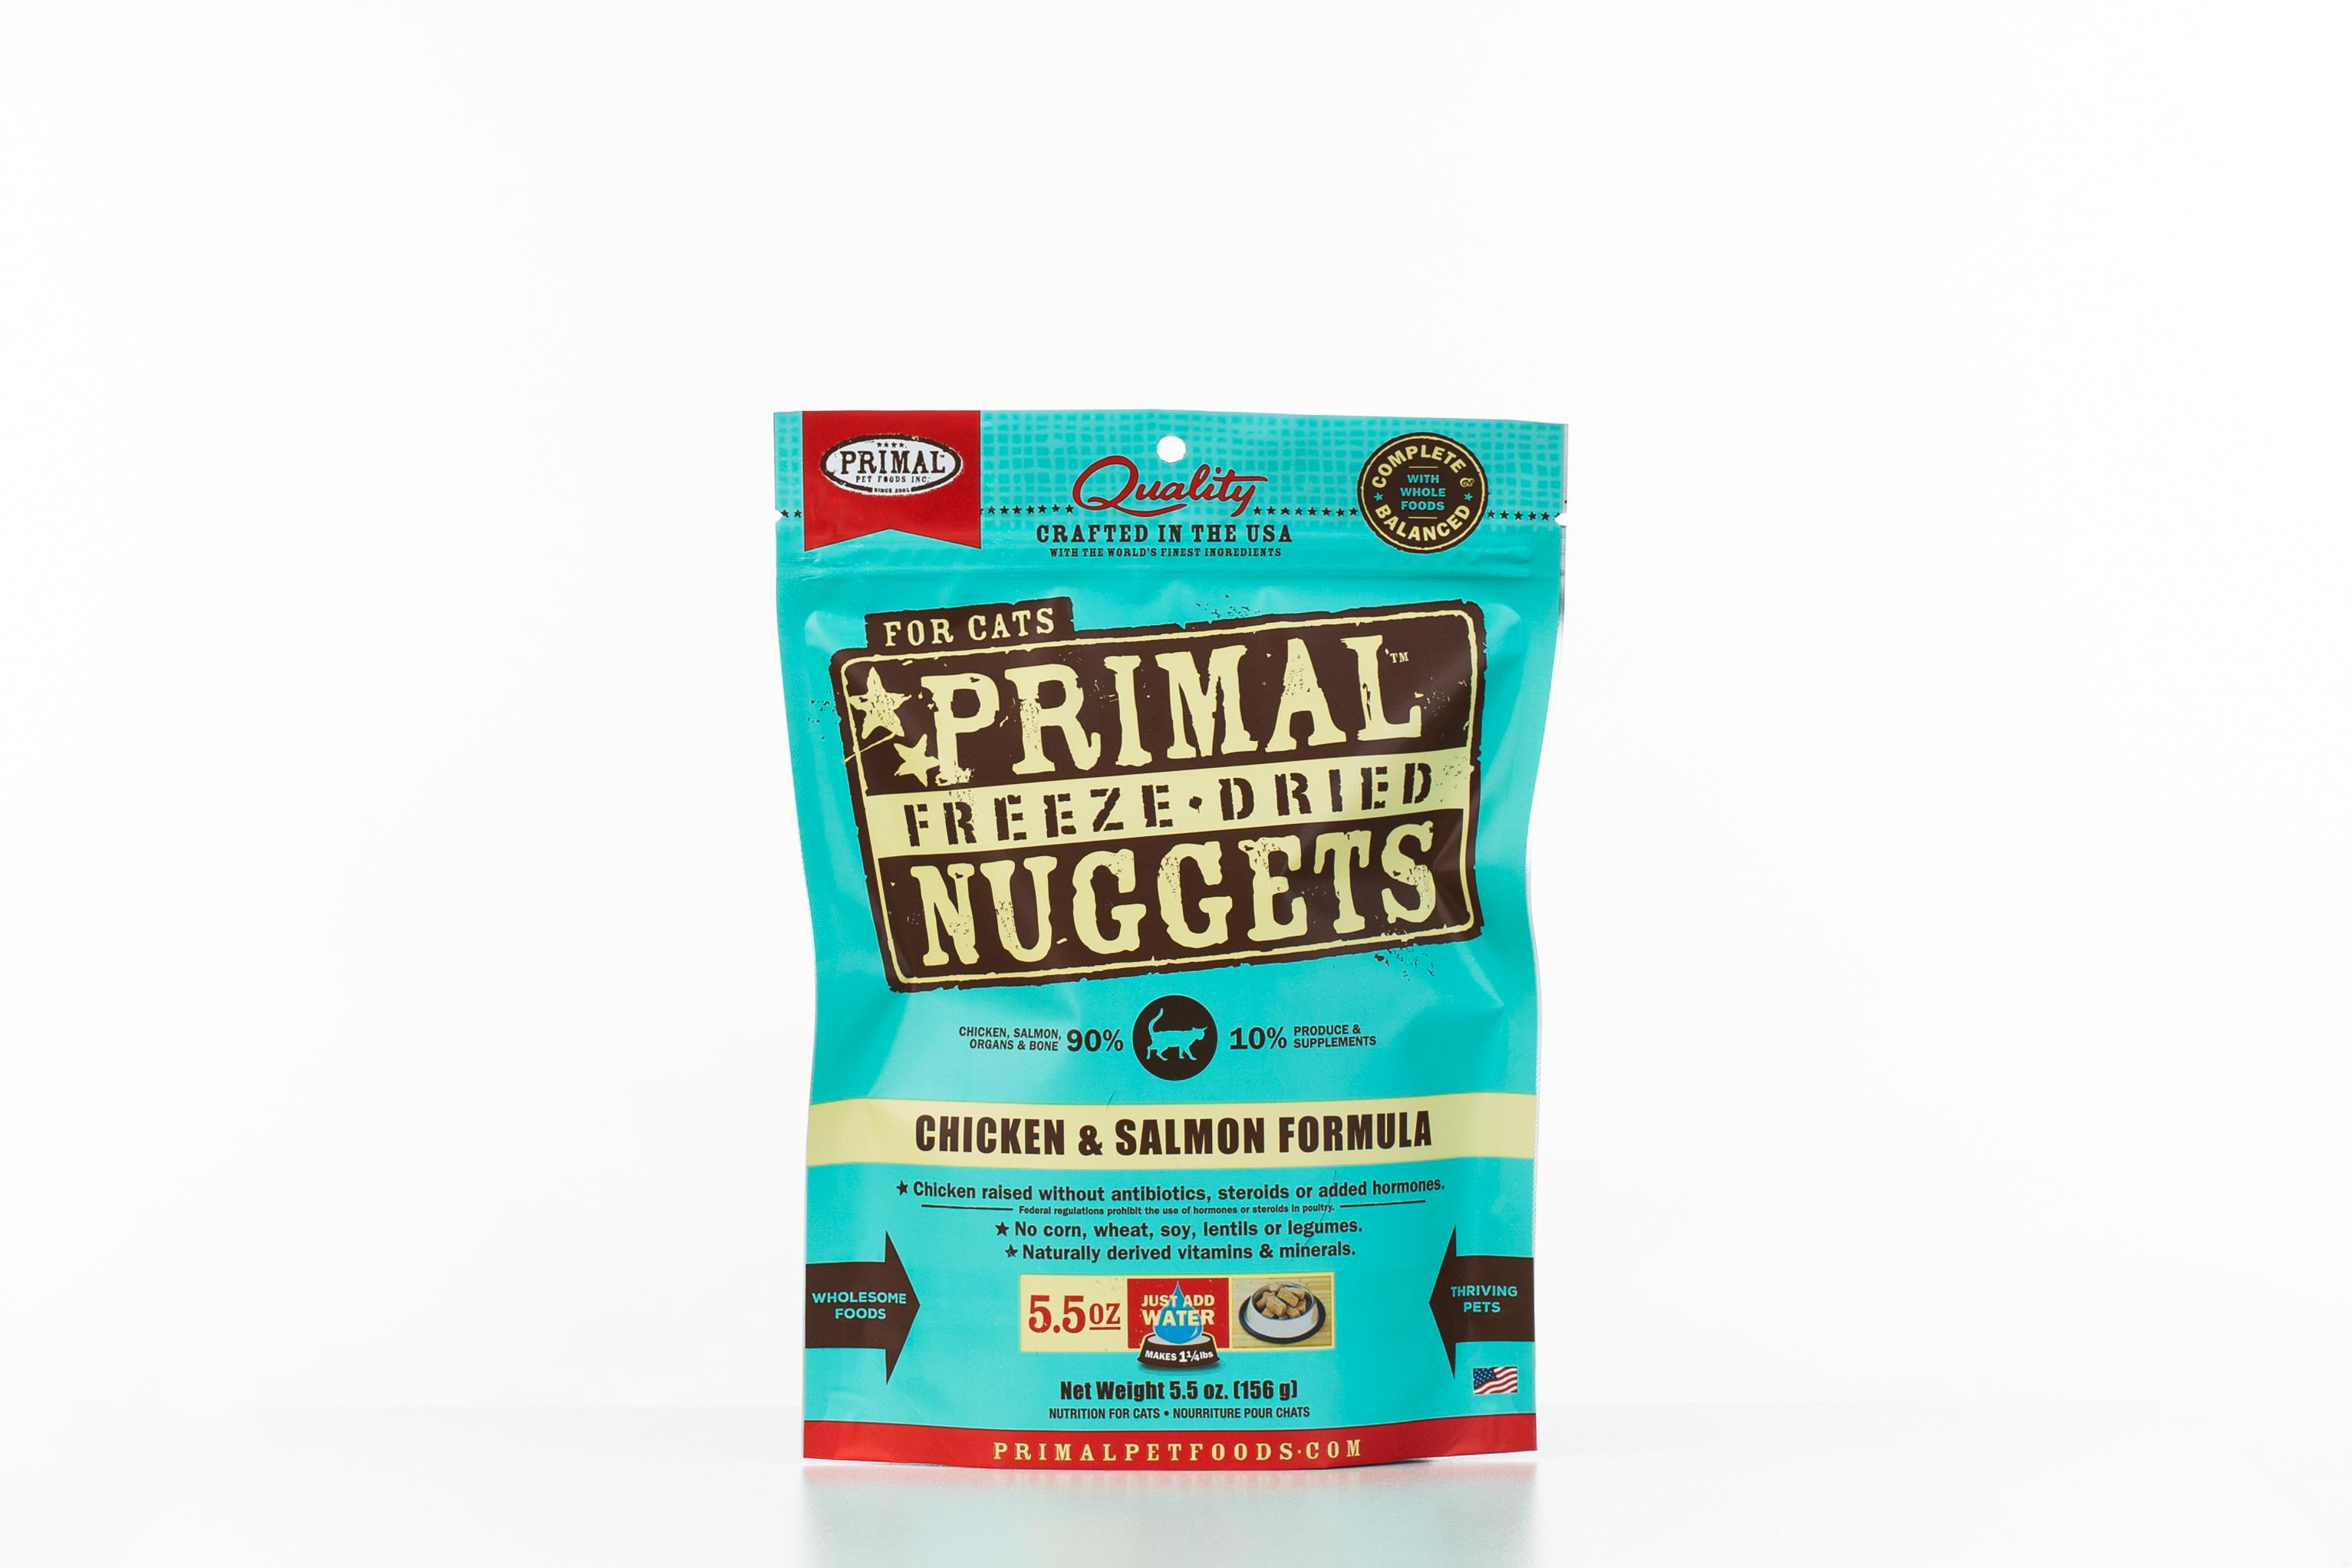 Primal Raw Freeze-Dried Nuggets Chicken & Salmon Formula Cat Food Image